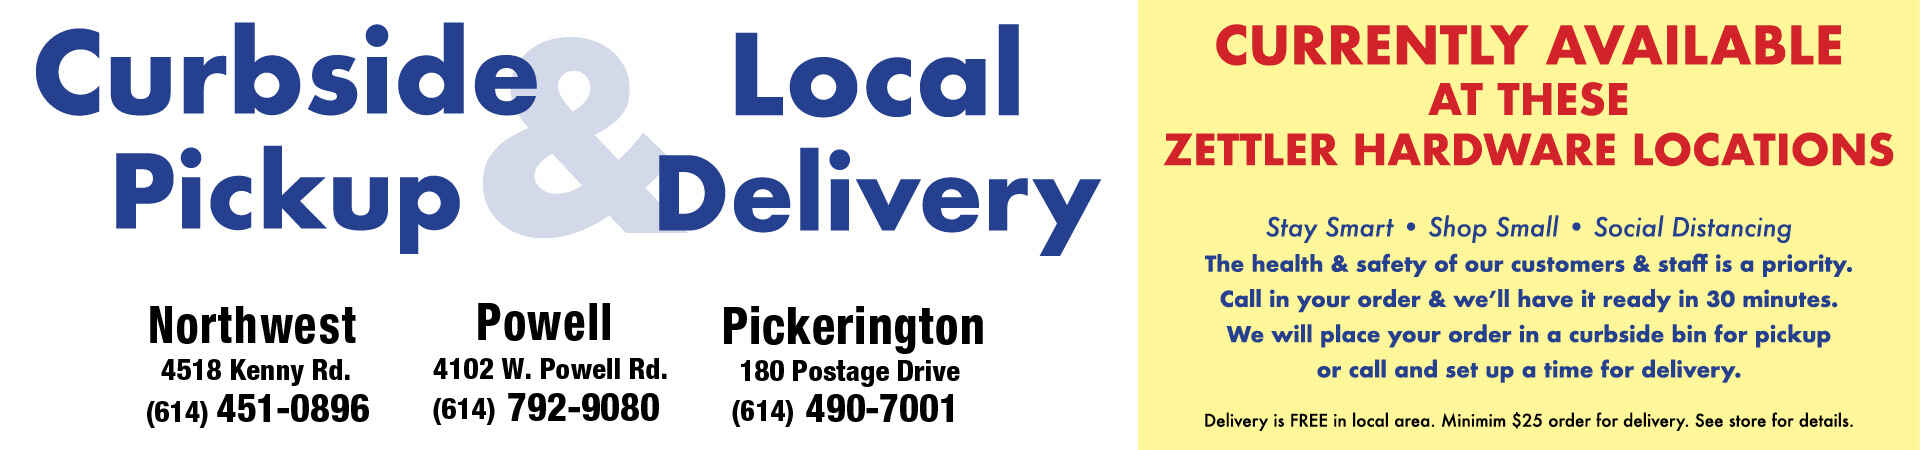 Curbside Pickup and Delivery